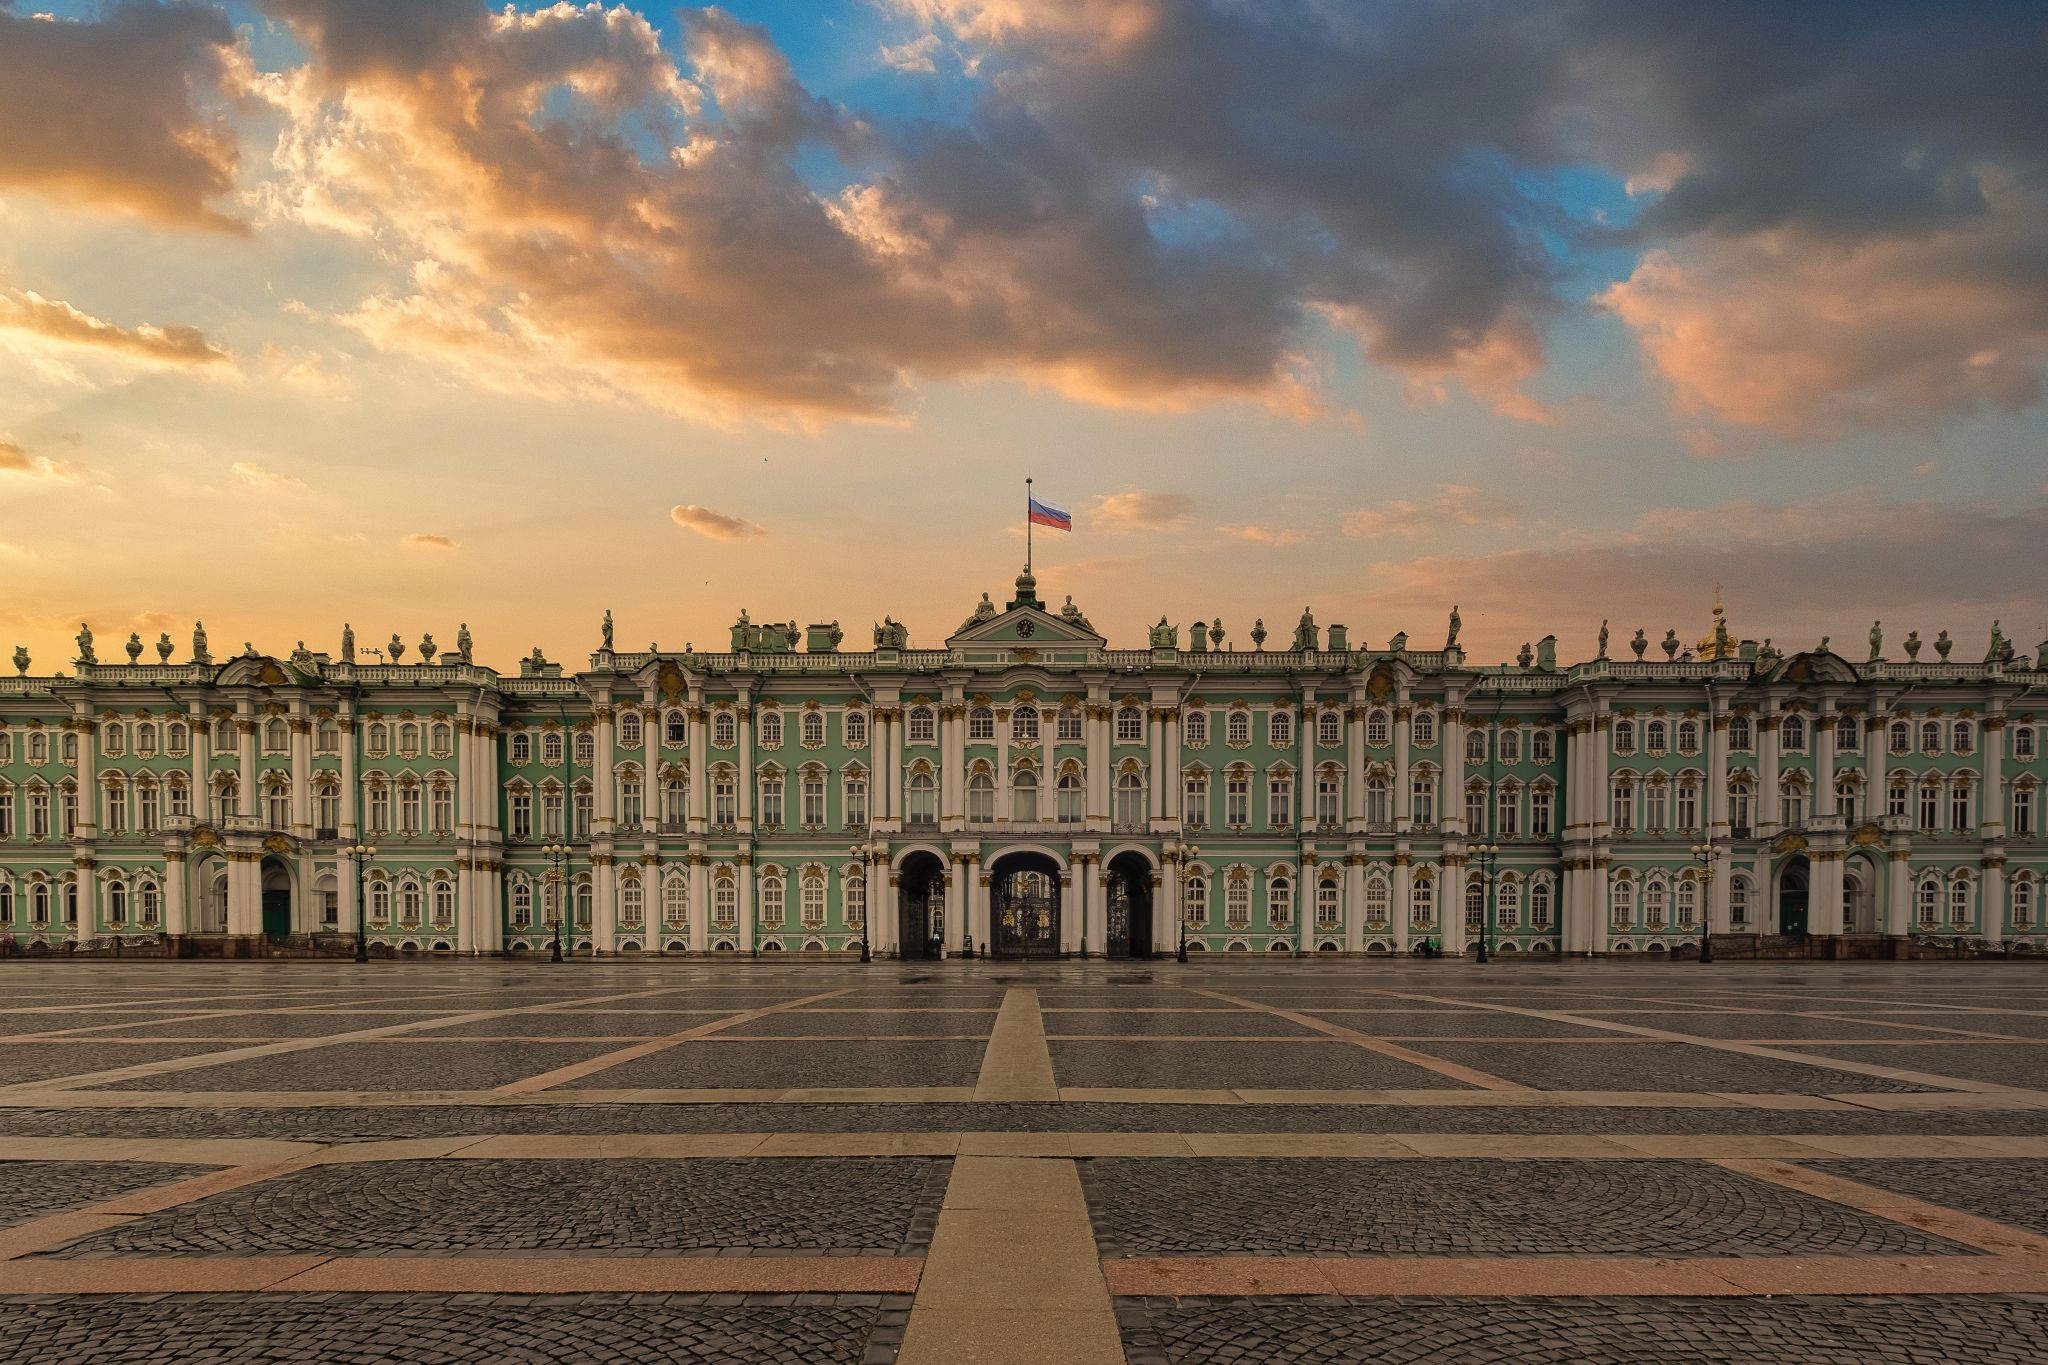 state-hermitage-museum-russian-federation_l